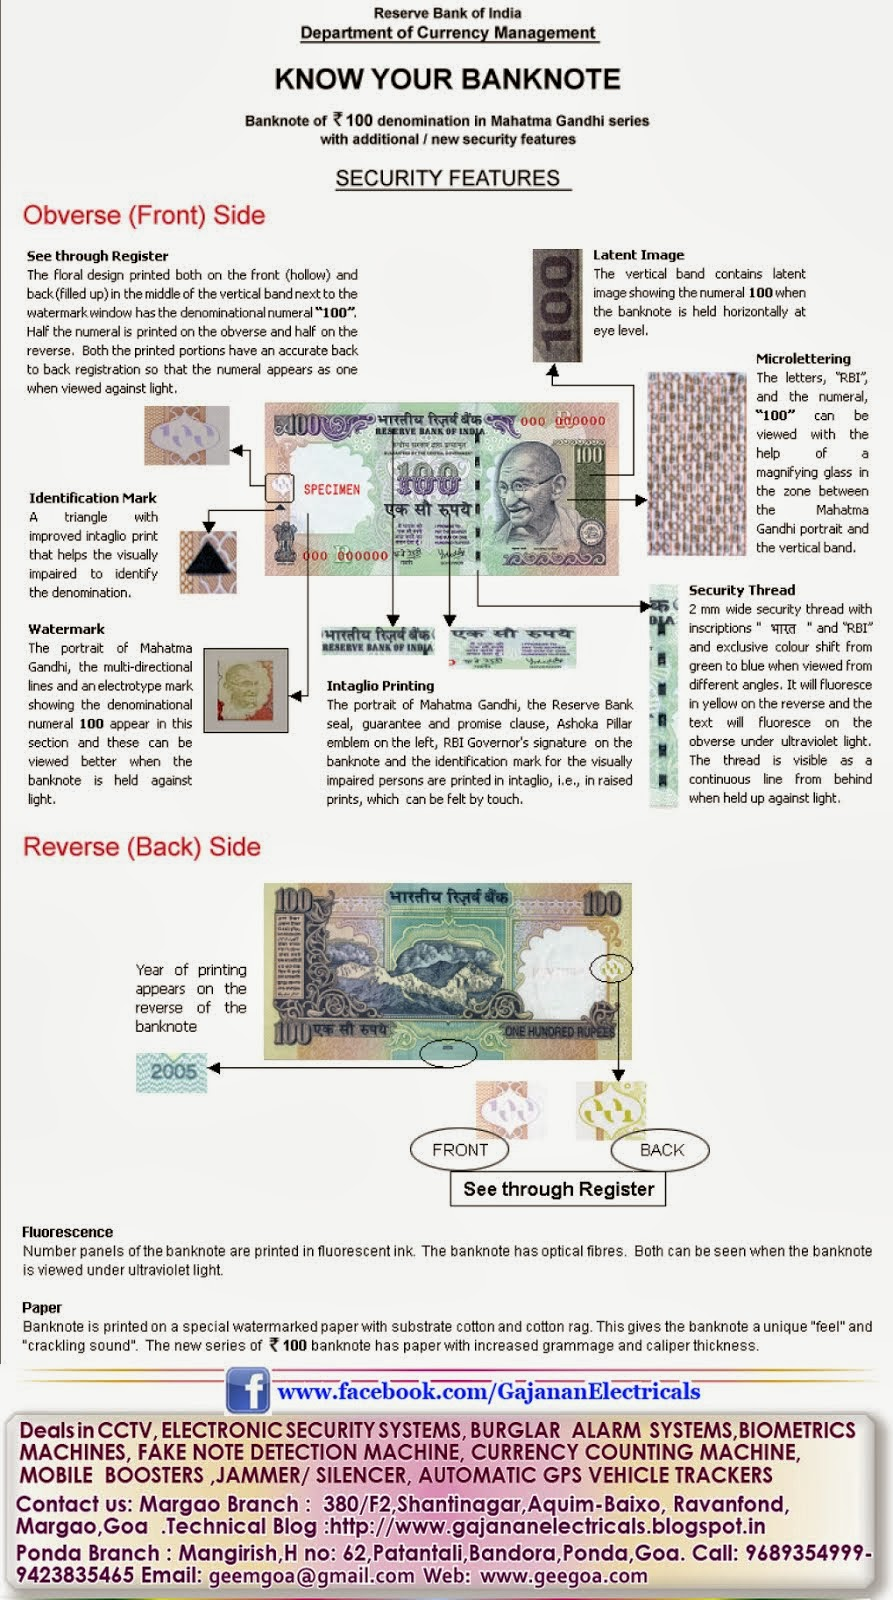 Gajanan Electricals and Electronics: How to detect Fake notes in Goa